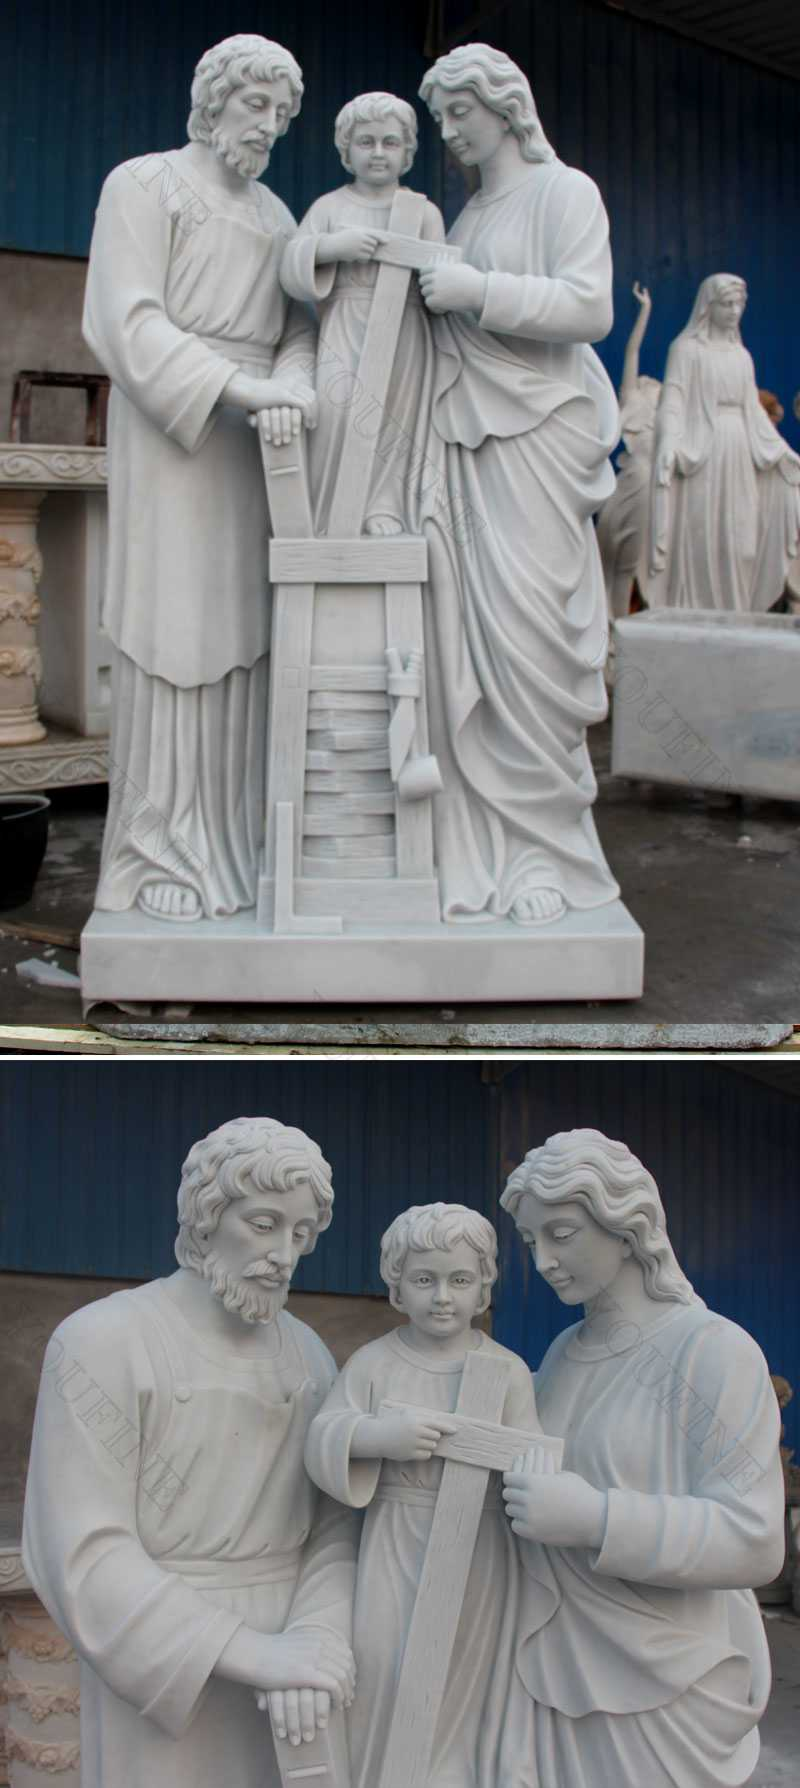 Holy family of mary joseph and baby jesus statues details